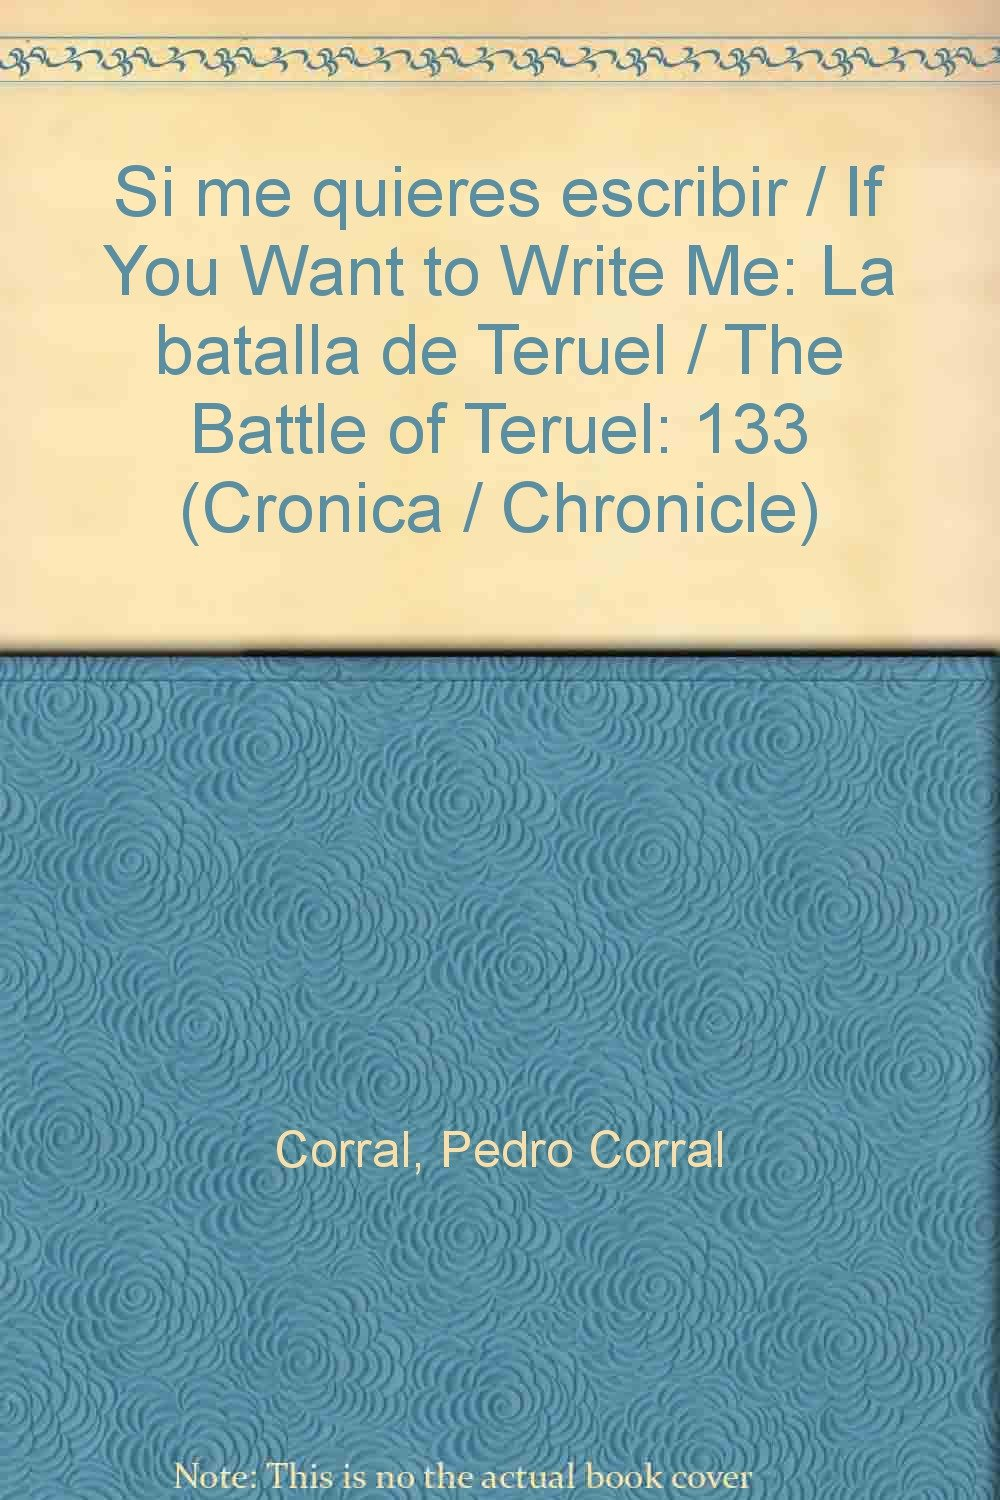 Si me quieres escribir / If You Want to Write Me: La batalla de Teruel / The Battle of Teruel (Cronica / Chronicle) (Spanish Edition)